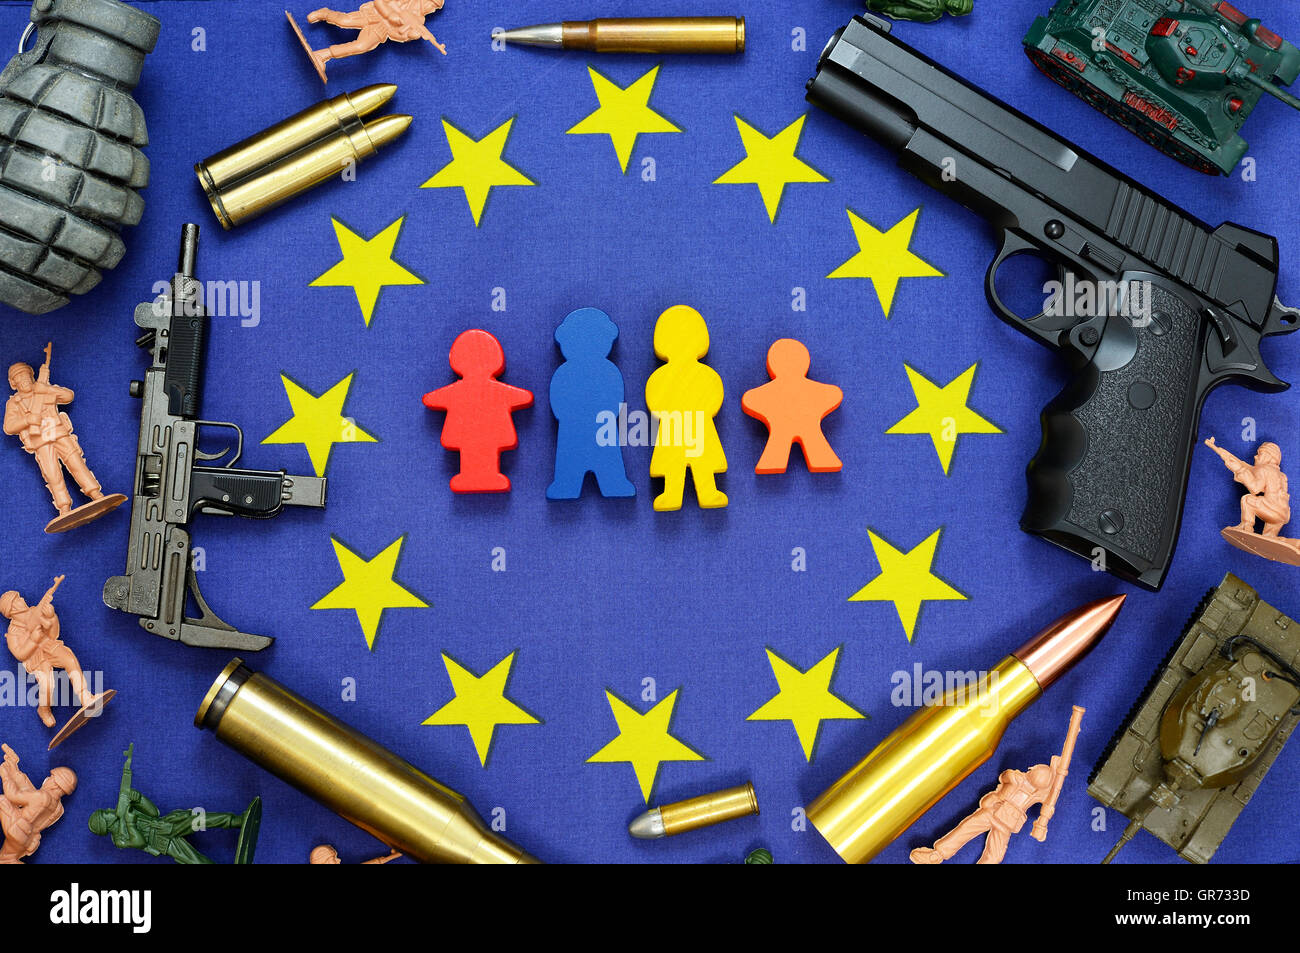 Eu Flag, Weapons And Miniature Family Figures, Wave Of Refugees - Stock Image